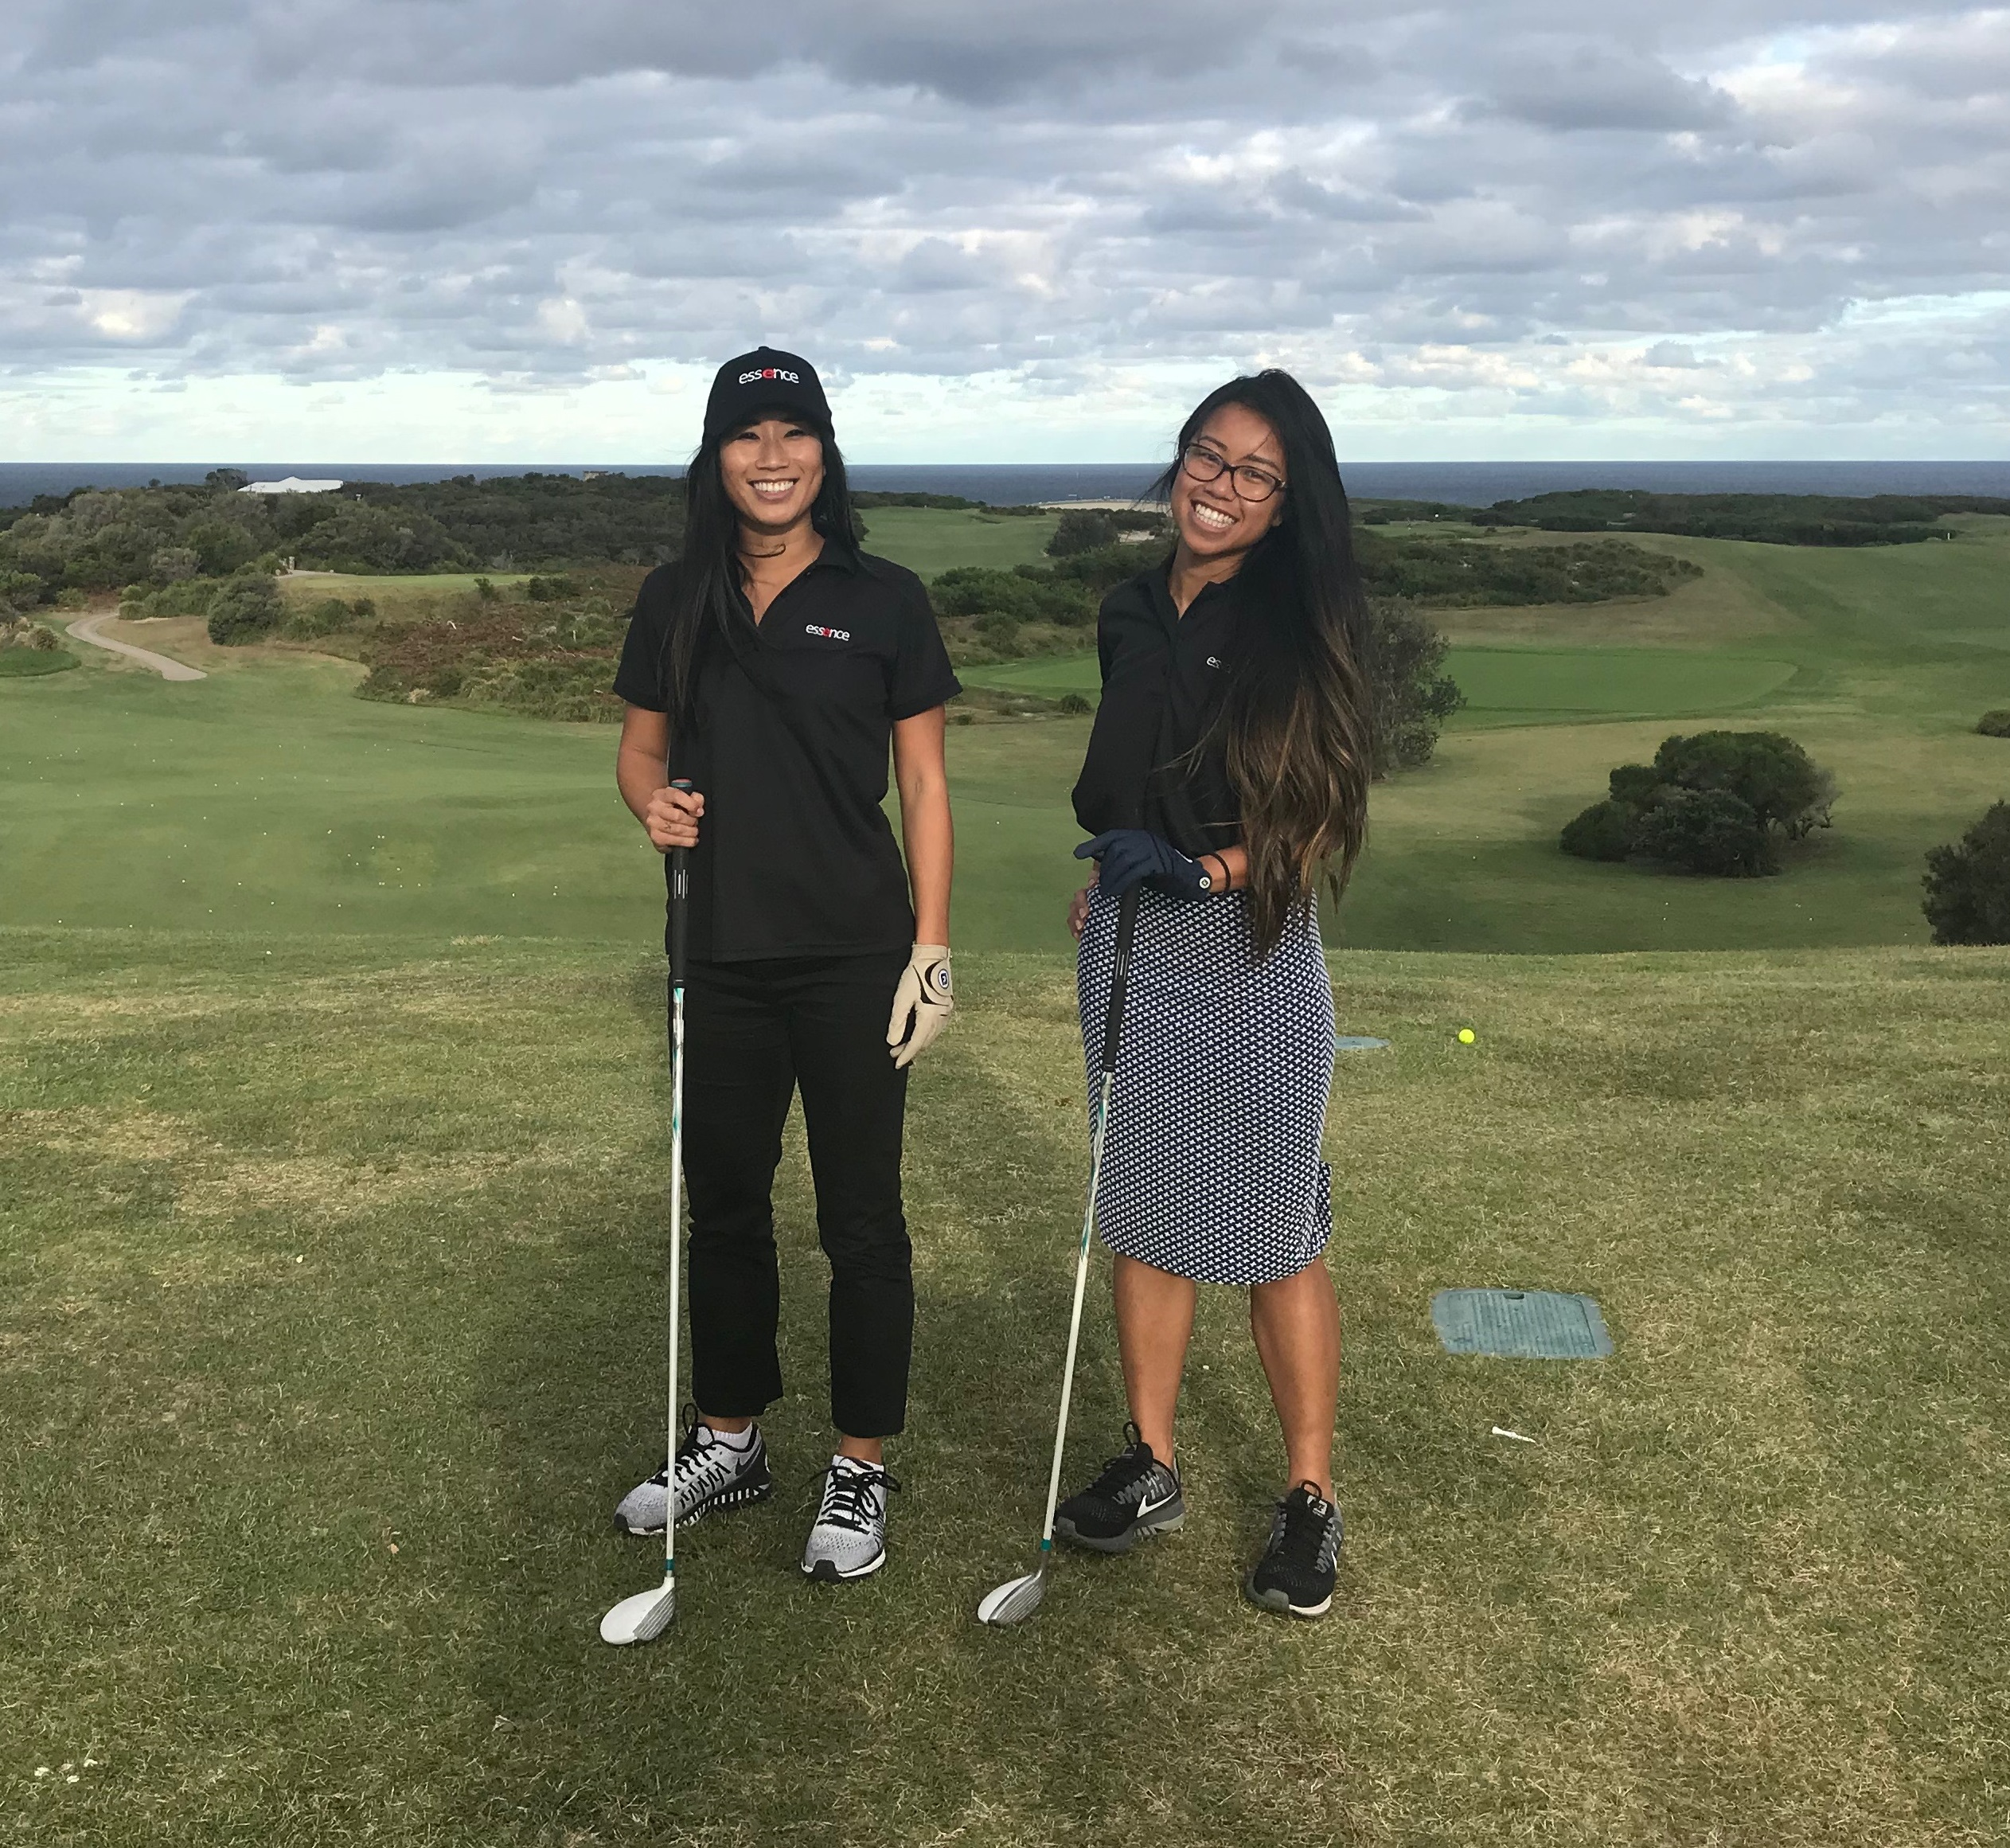 Essence Ladies Kylie and Lena hit the golf course